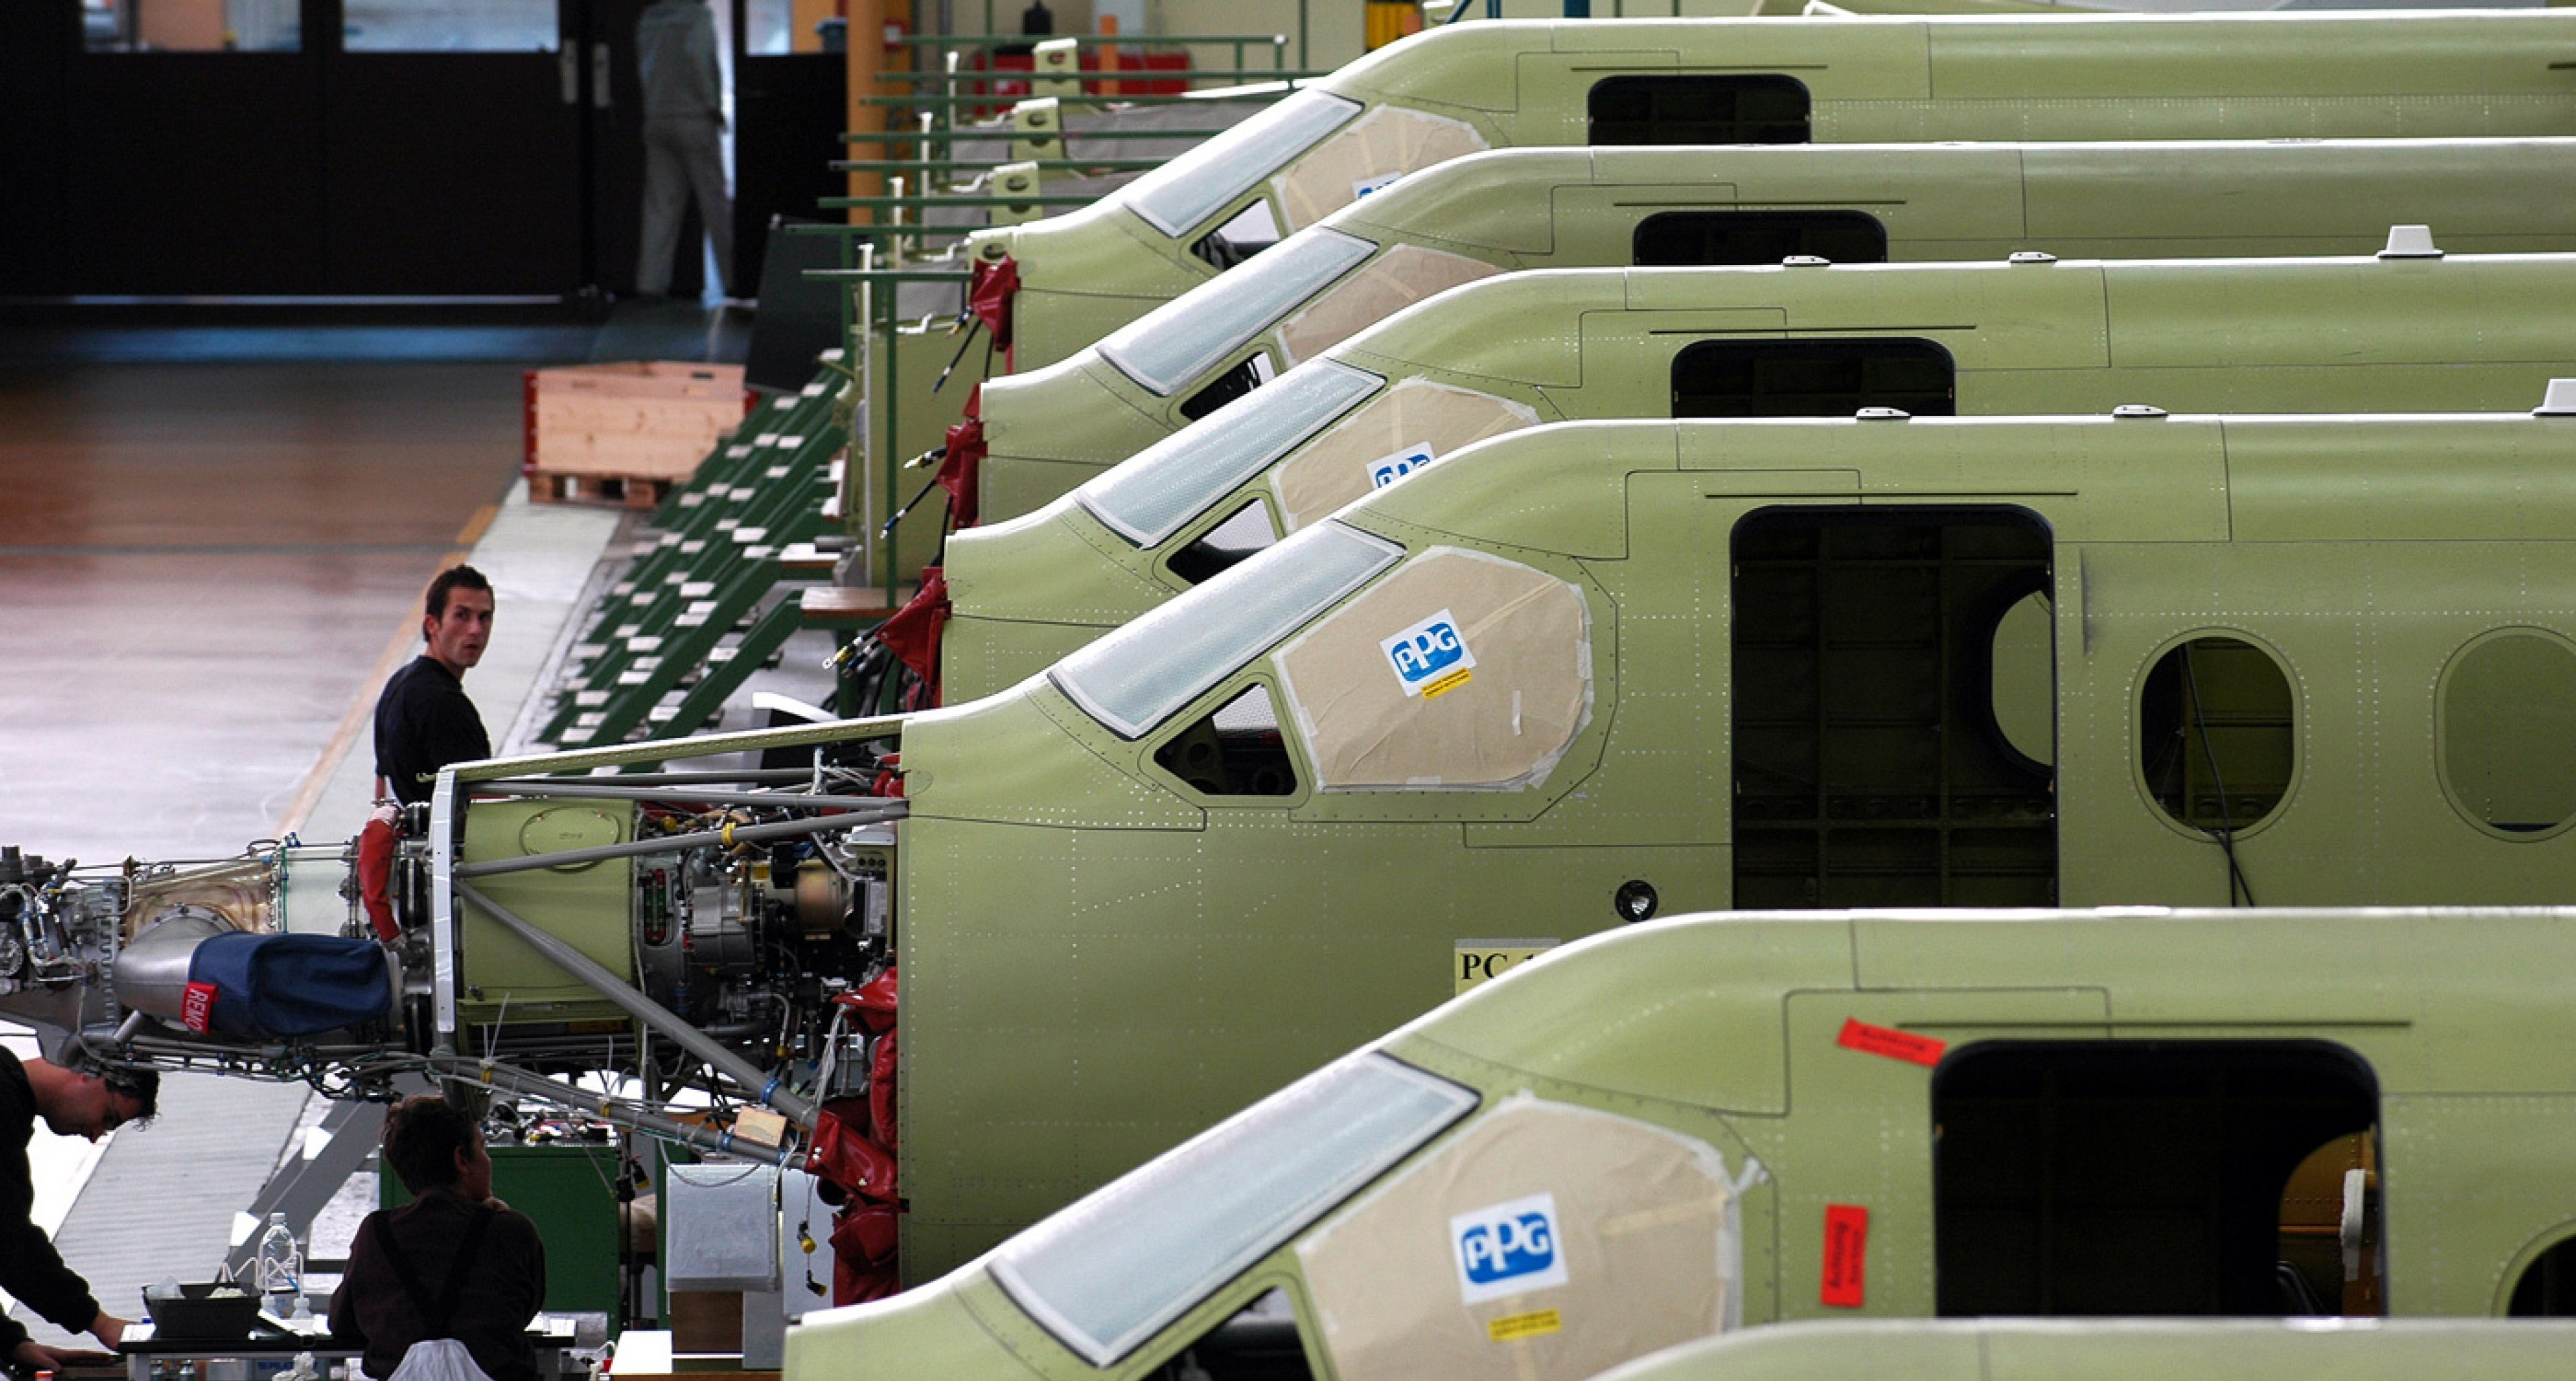 Timewarp: The PC-12 assembly line today